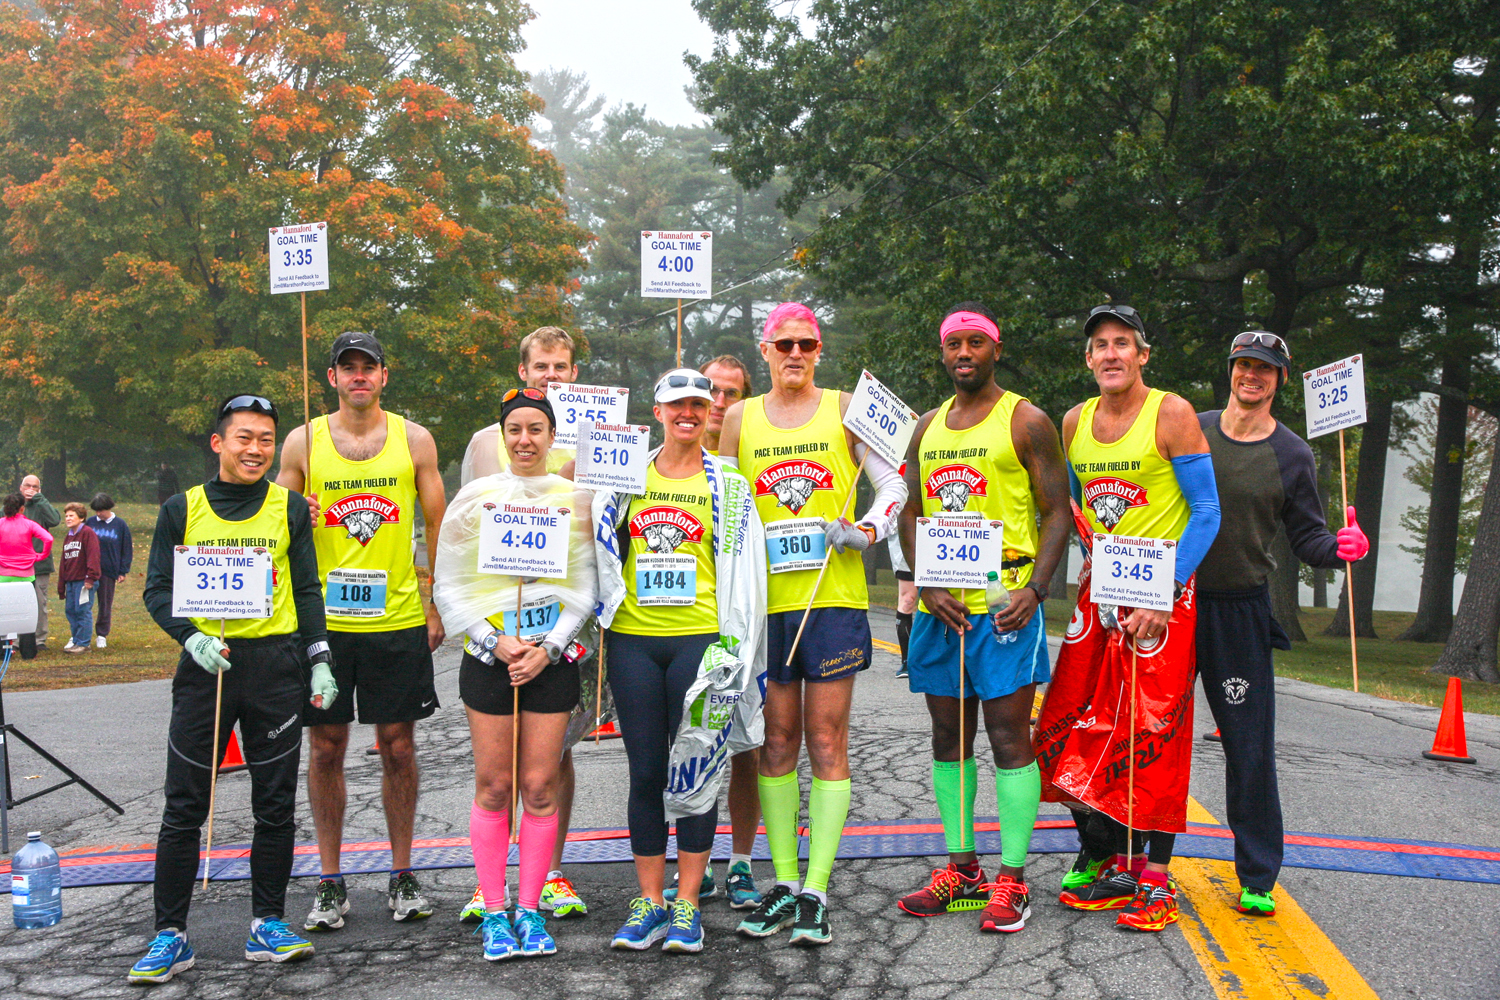 Marathon pace leaders are ready to go. Bill Meehan